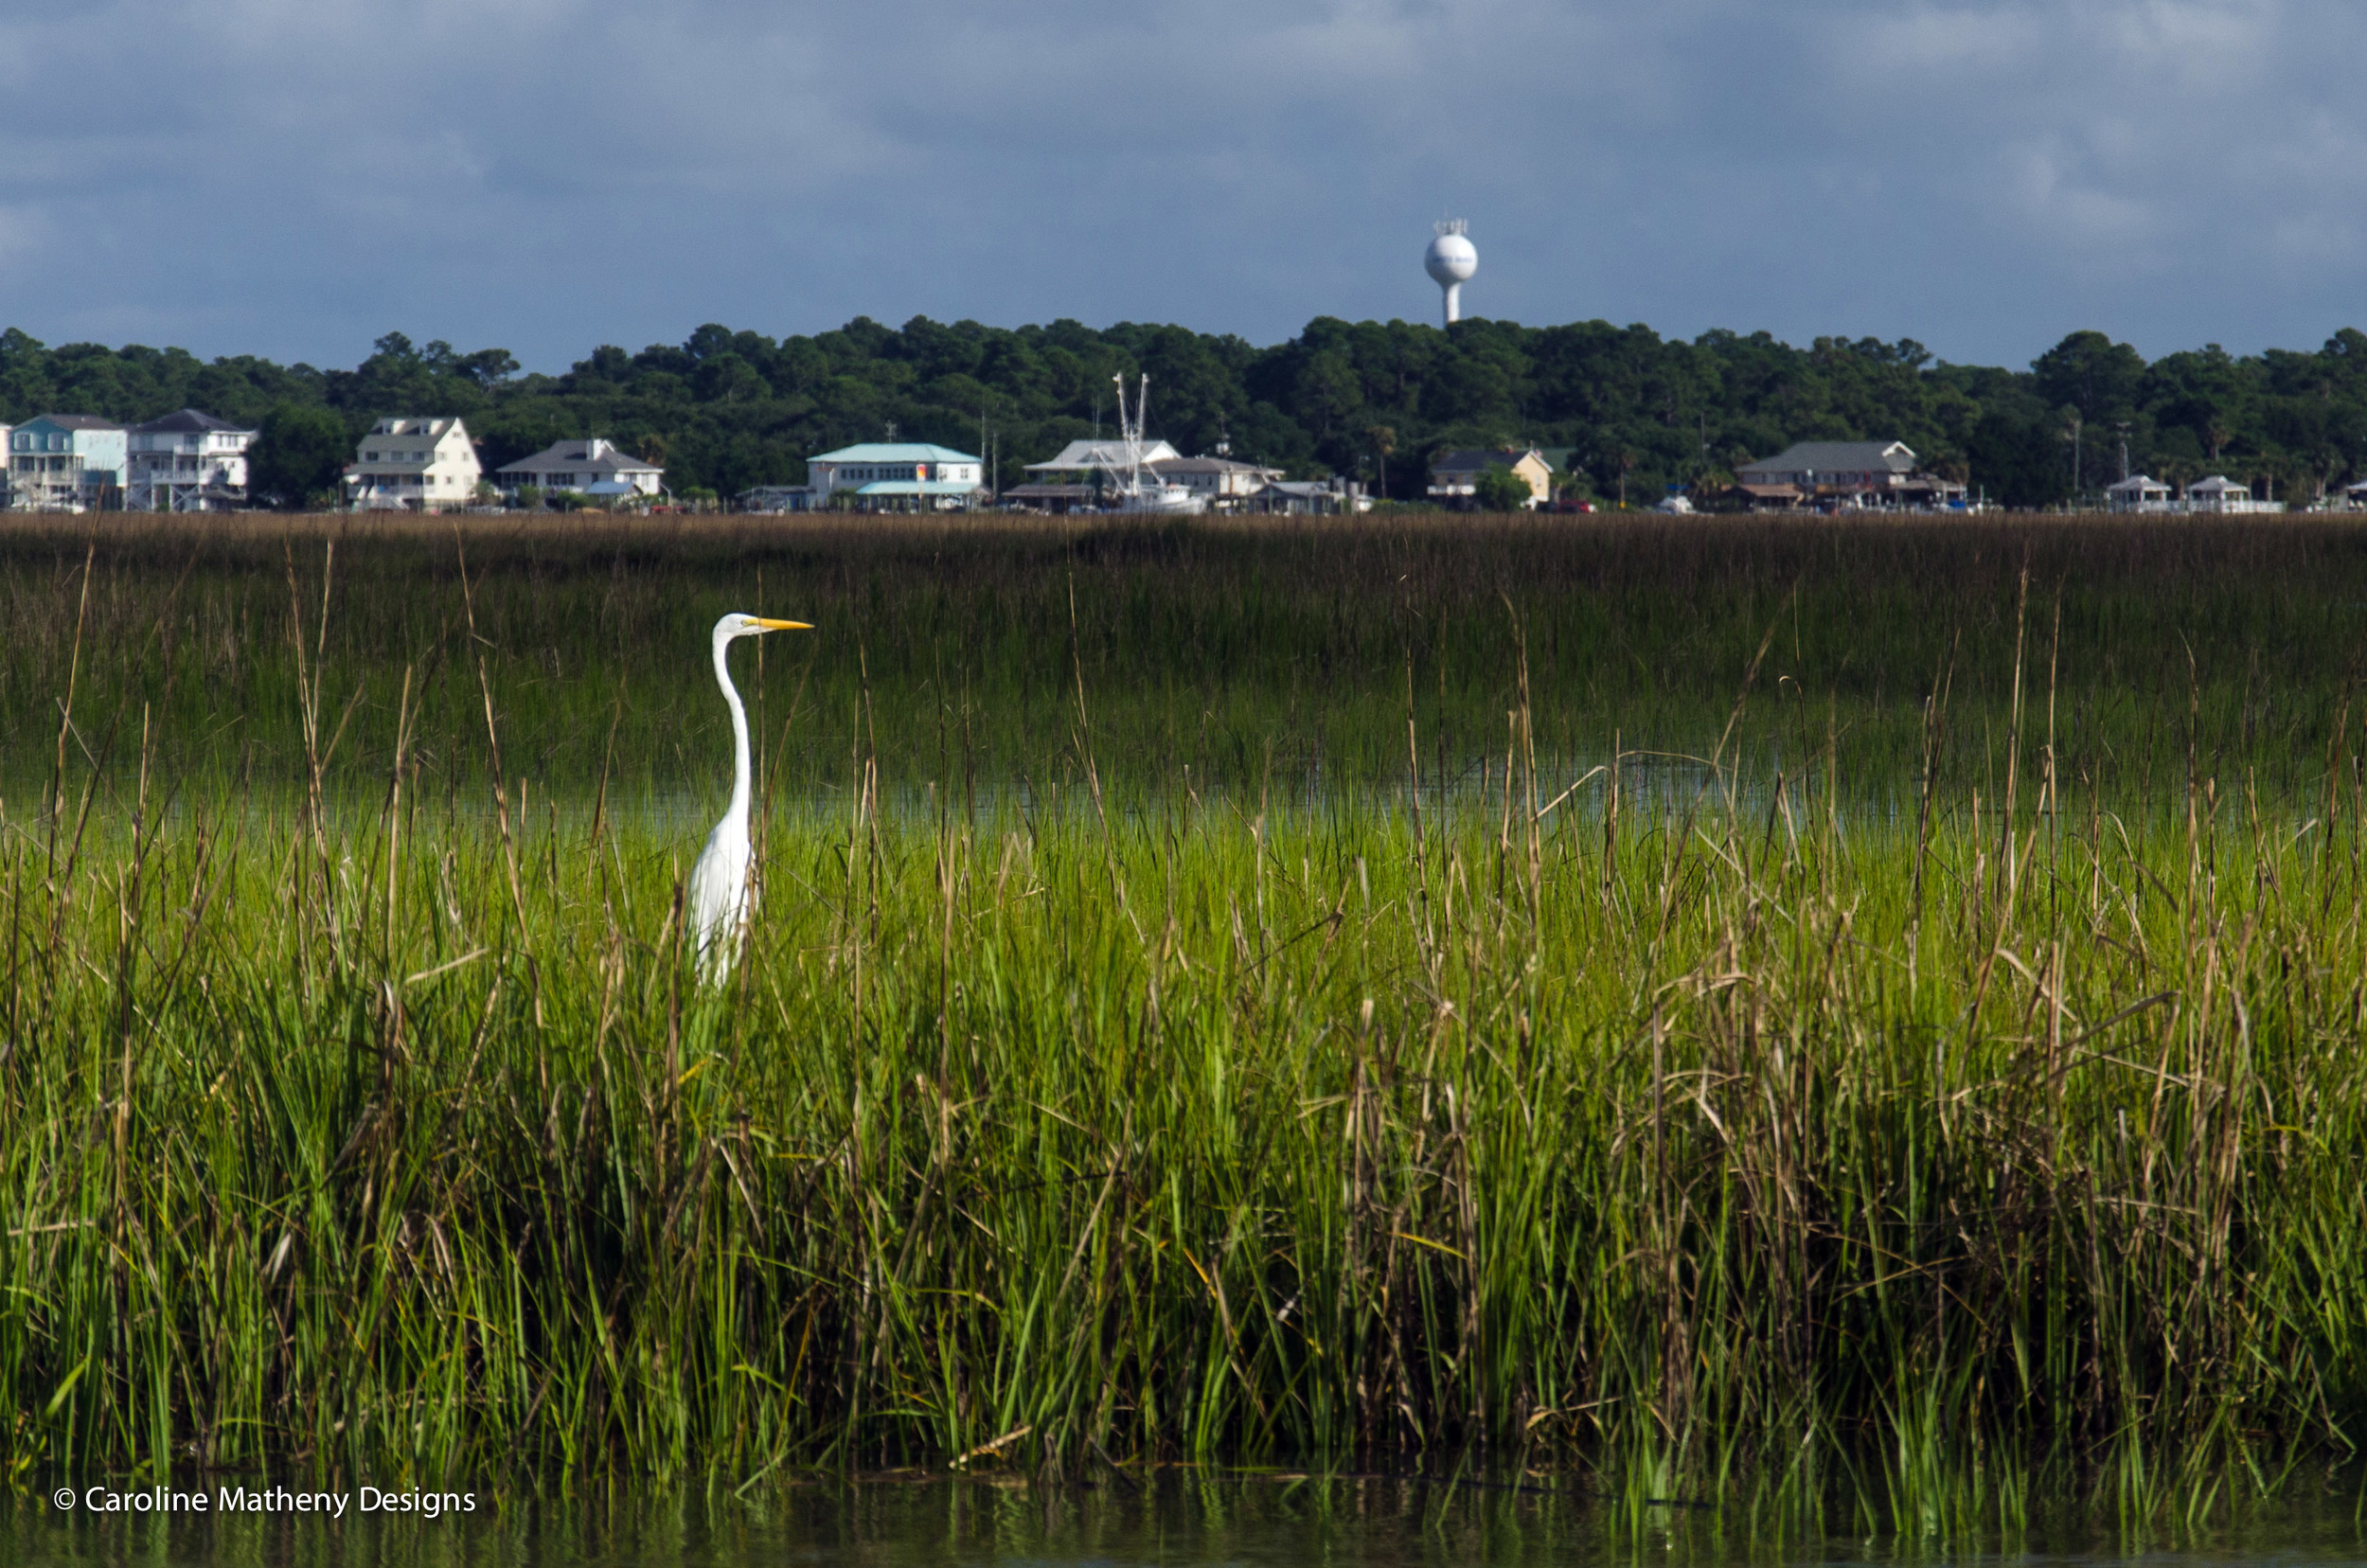 A stunning egret among the marsh grass in front of Edisto Beach, SC.